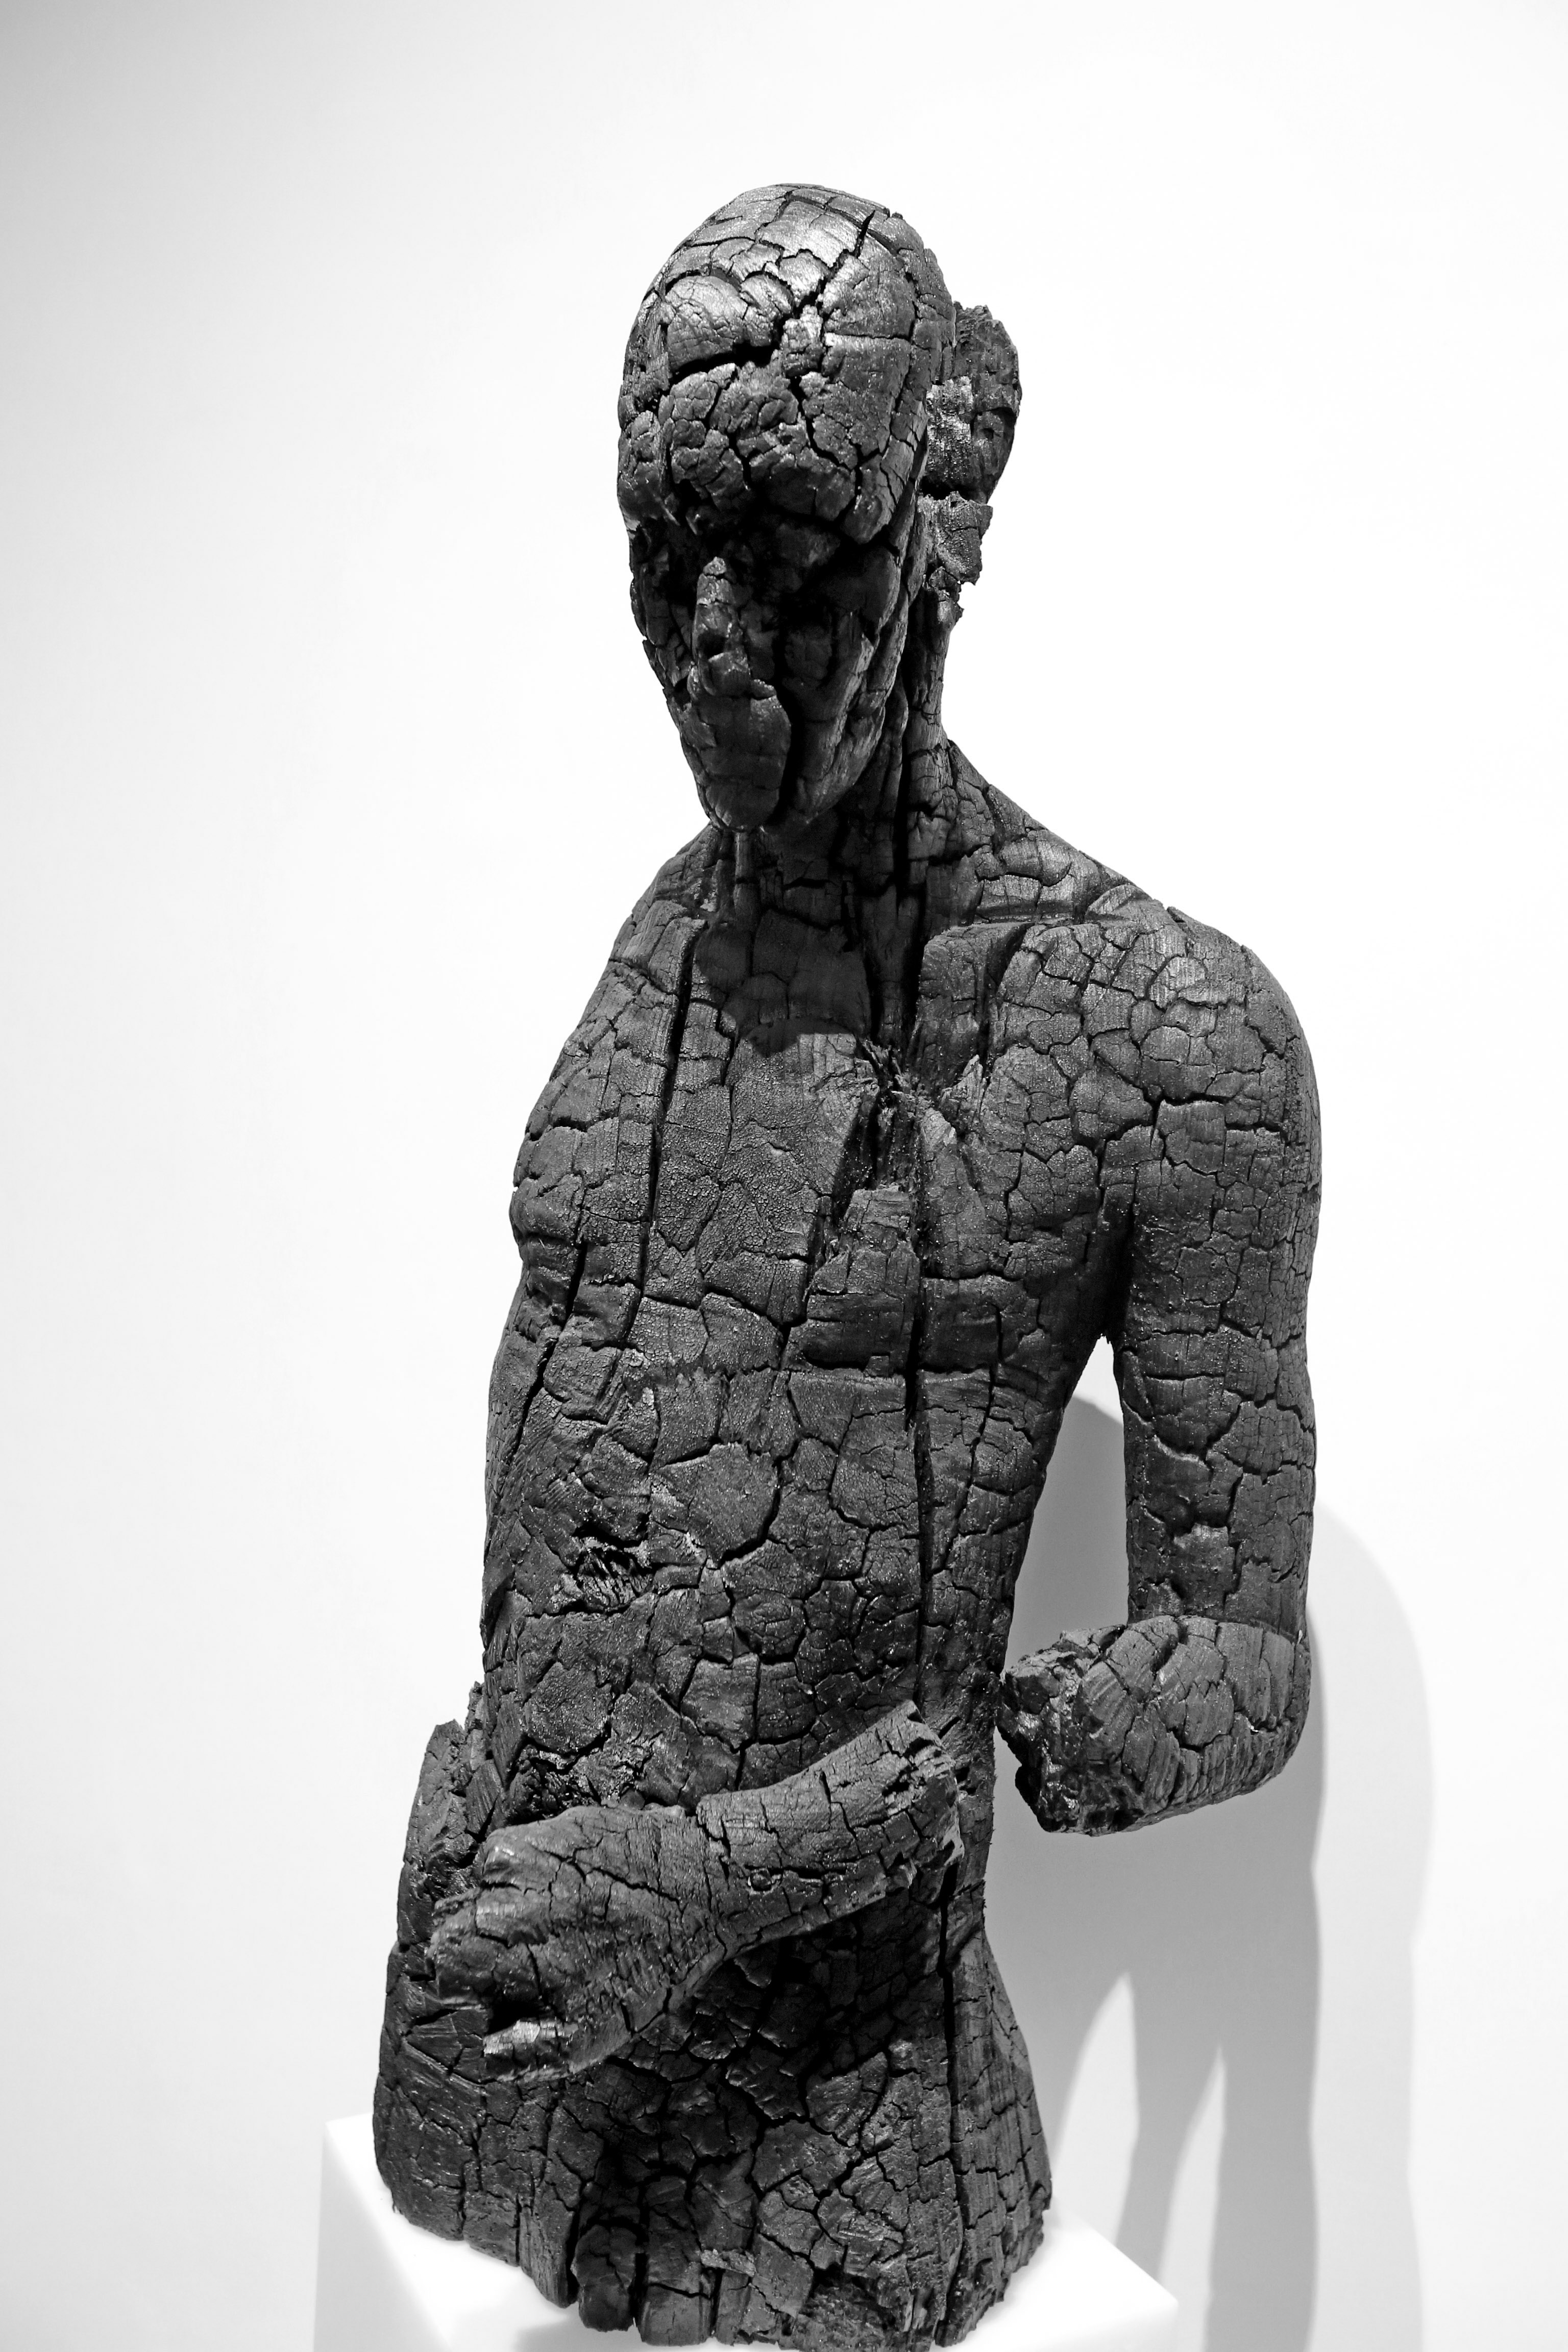 Dies Cenerum, 2014, carbonized wood, 90x43x40